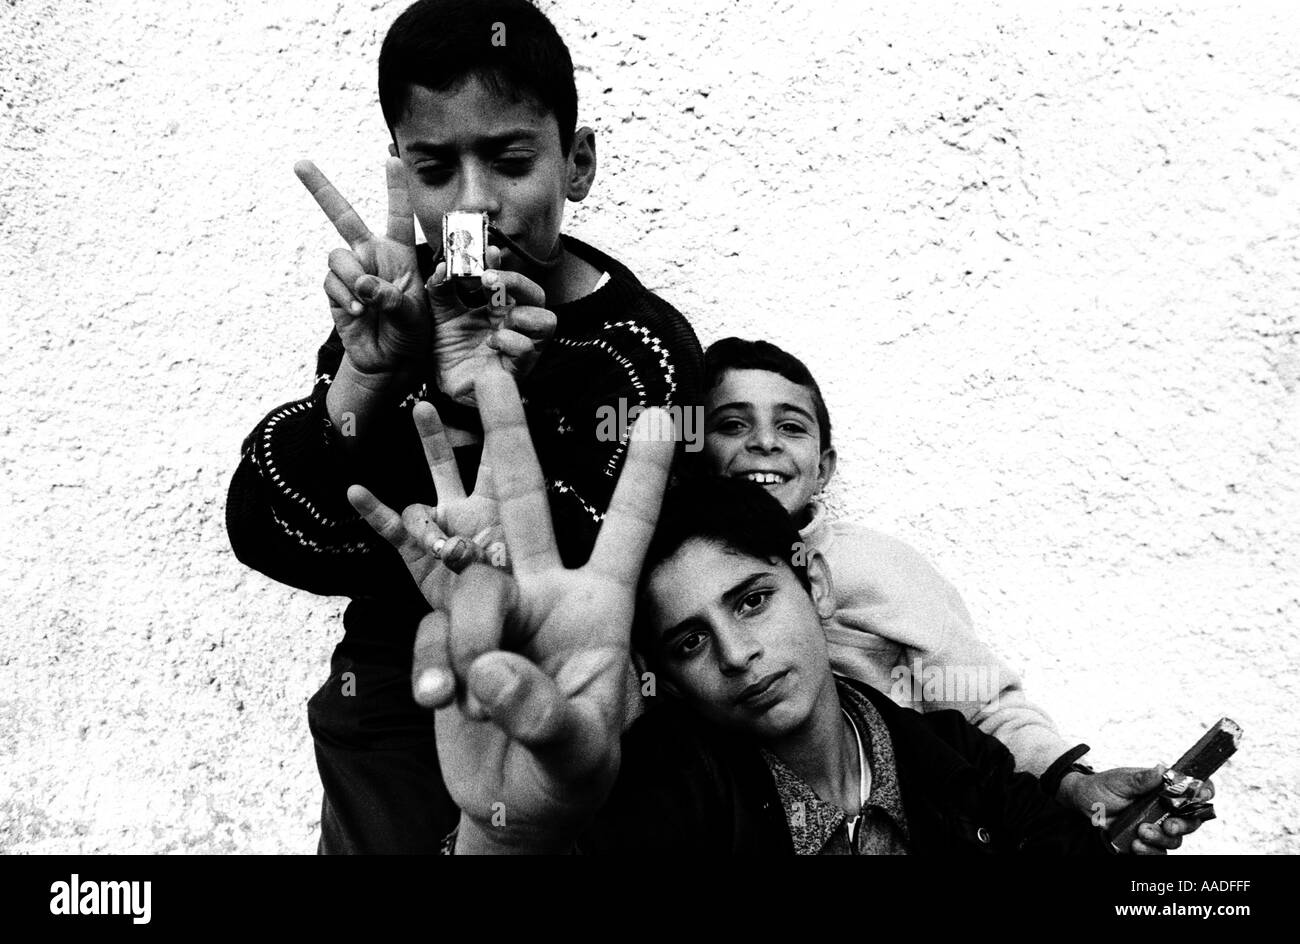 Palestinian young boys wave the victory sign - Stock Image